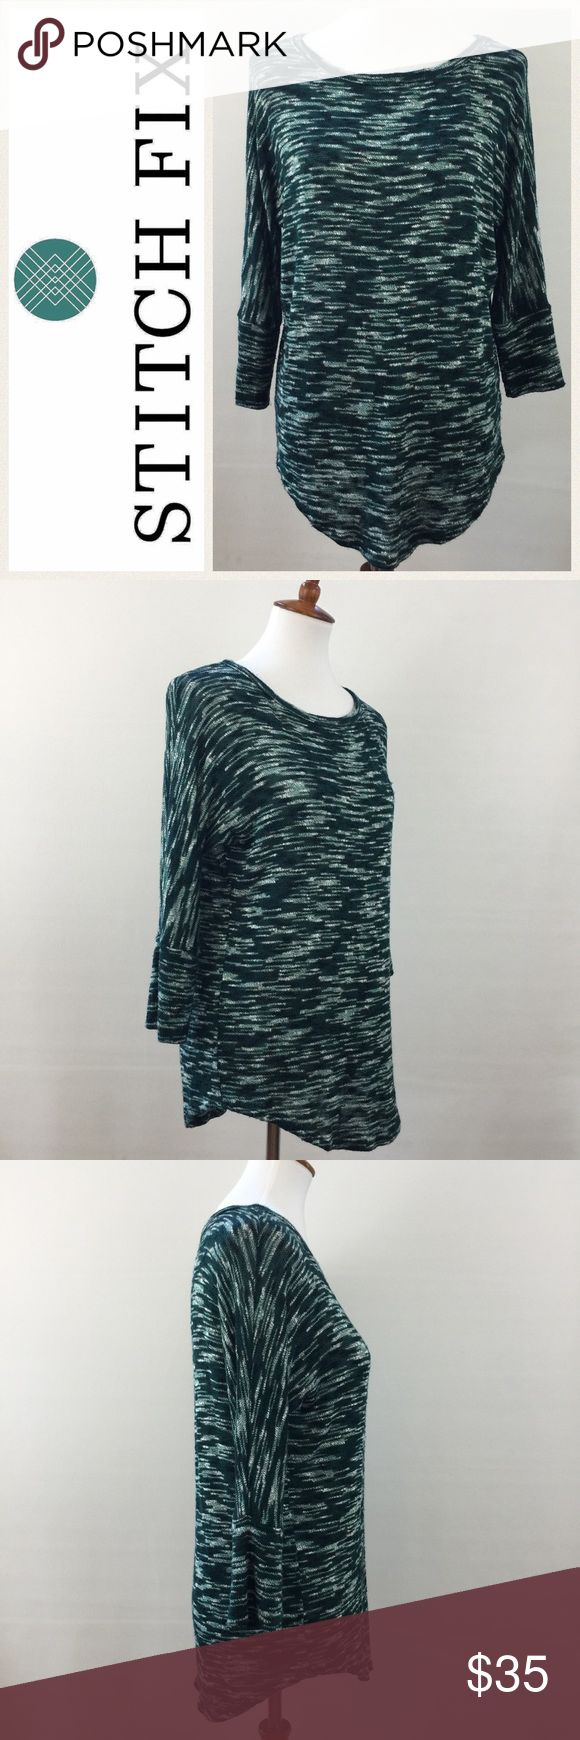 """Market & Spruce Sawyer Space Dye Dolman Knit Top EUC.  Market & Spruce Stitch Fix dolman sleeve knot top.  Dark green multi colored knit.  Curved hem.  3/4 length sleeves.  Logo and last photo are internet stock photos and for style purposes only.  Item is NOT grey.  Measurements are as follows and approximate, taken while garment was laying flat.  Underarm to underarm:  21"""".  Shoulder to hem:  25""""-27"""". Market & Spruce Tops"""